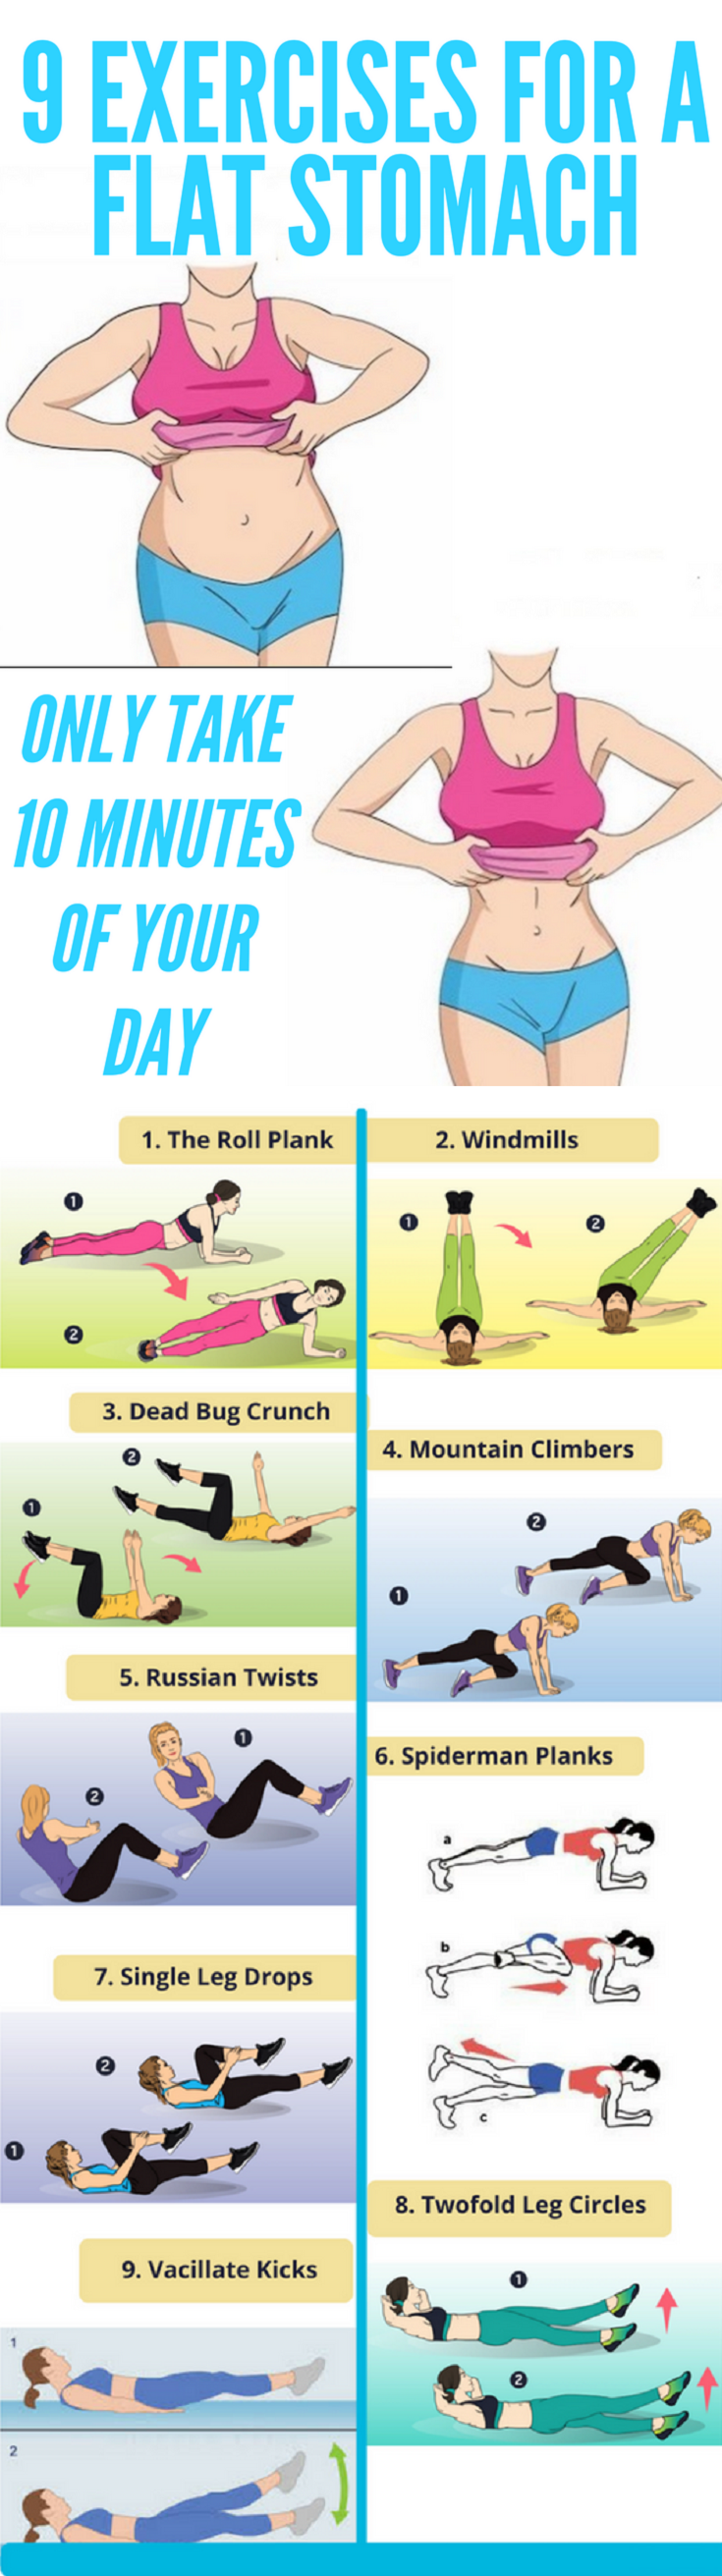 9 Exercises For A Flat Stomach, Only Take 10 Minutes Of